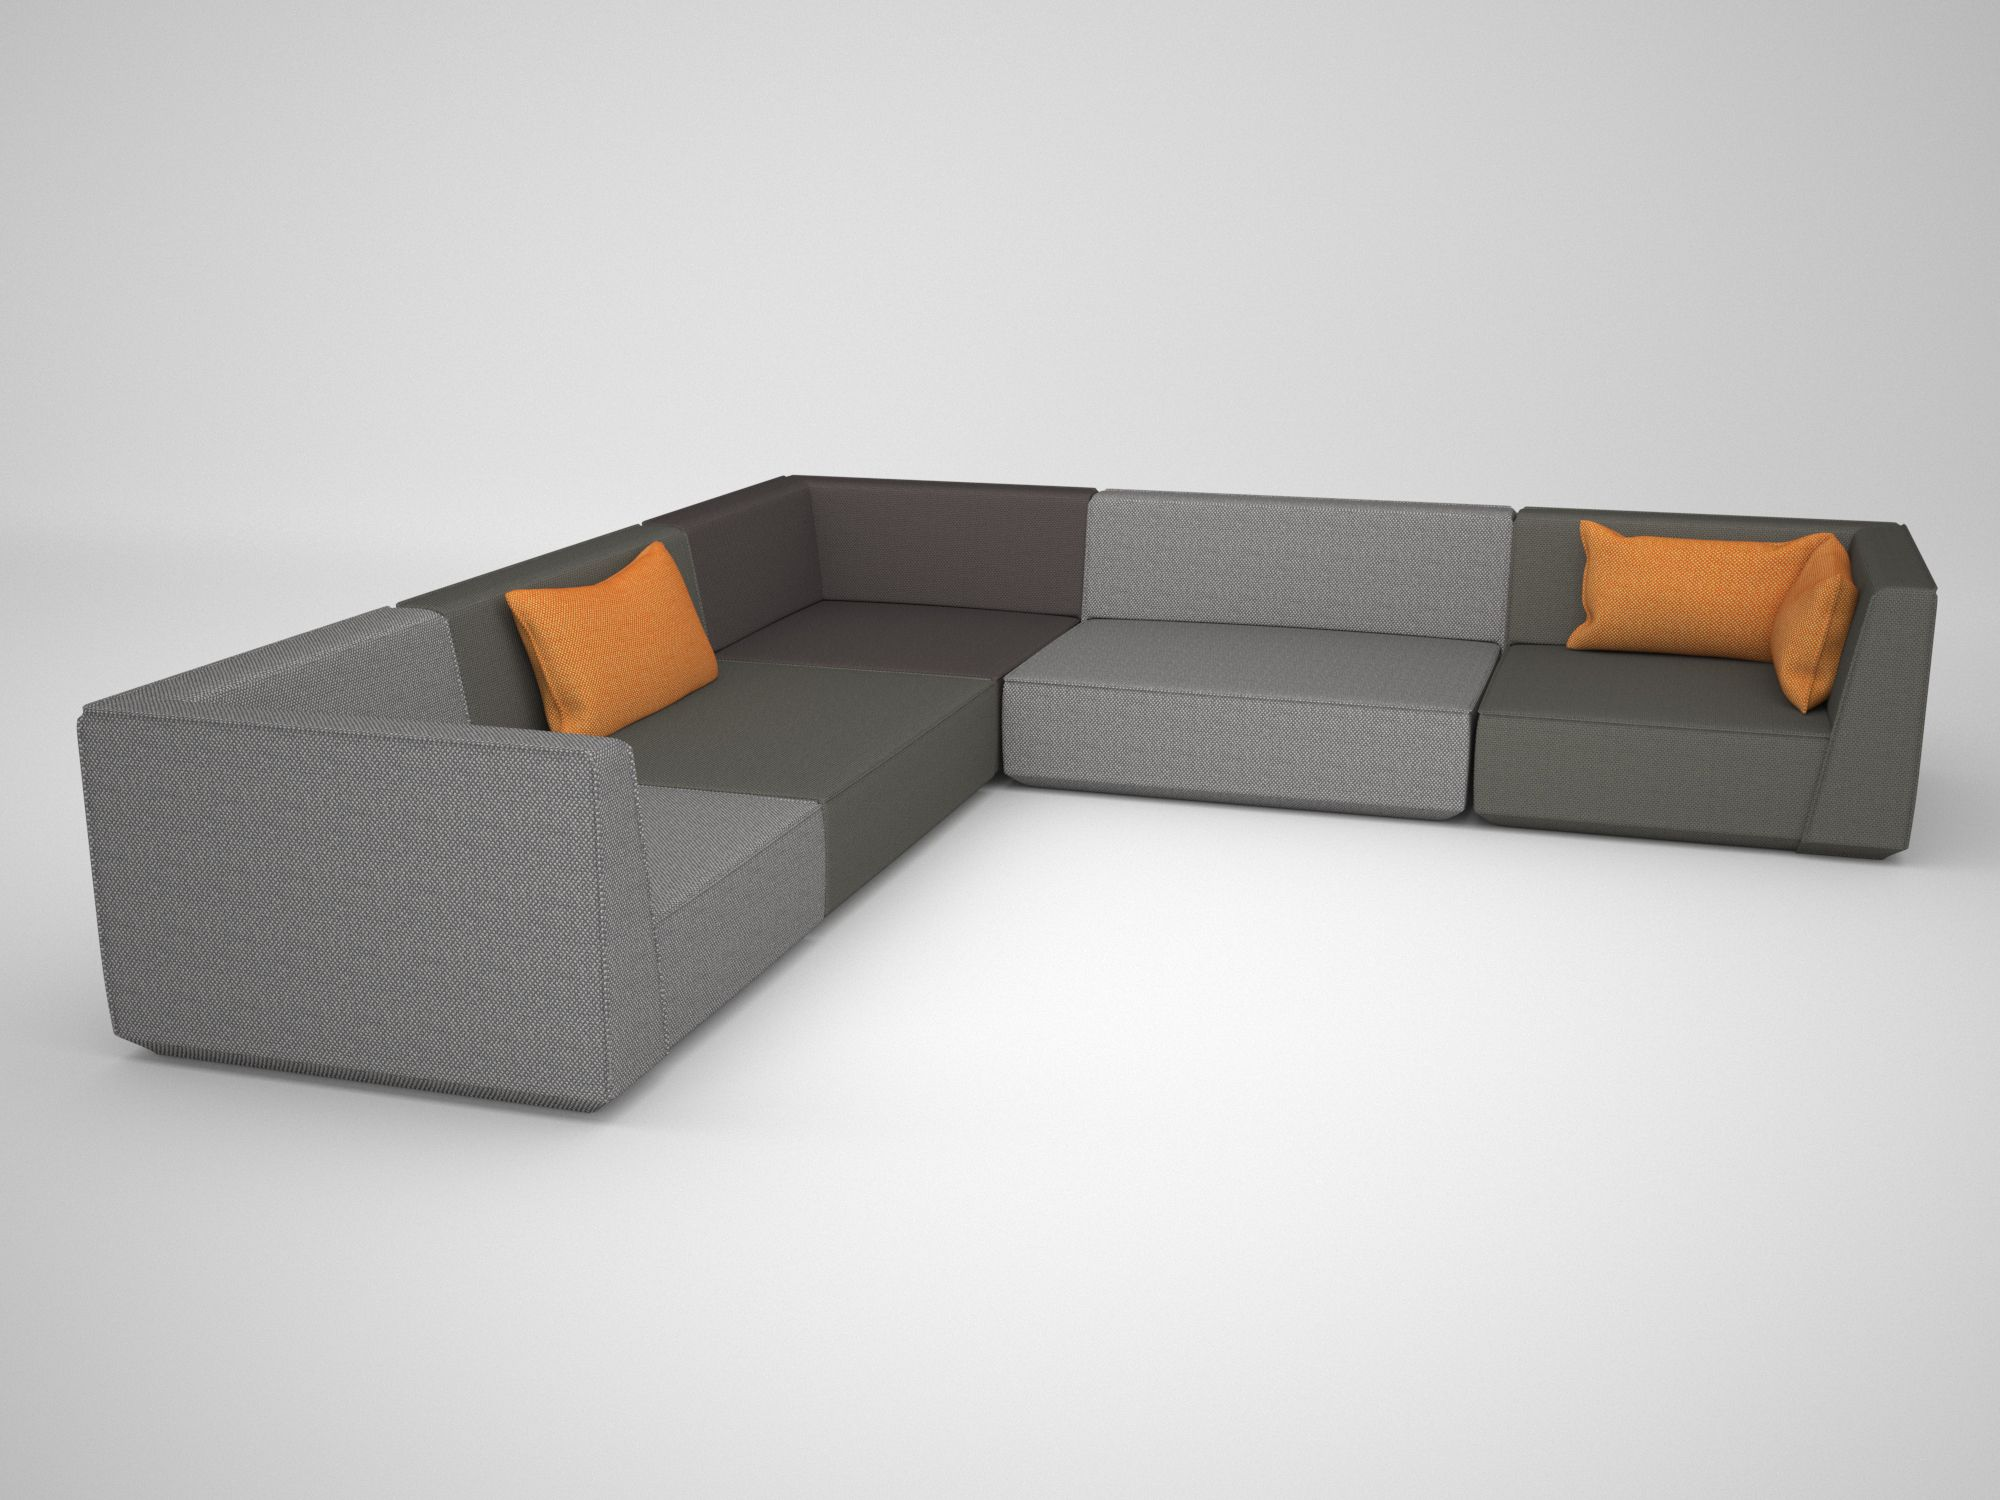 Canape Sofa Puristisches Ecksofa In L Form Streamlined Corner Sofa In L